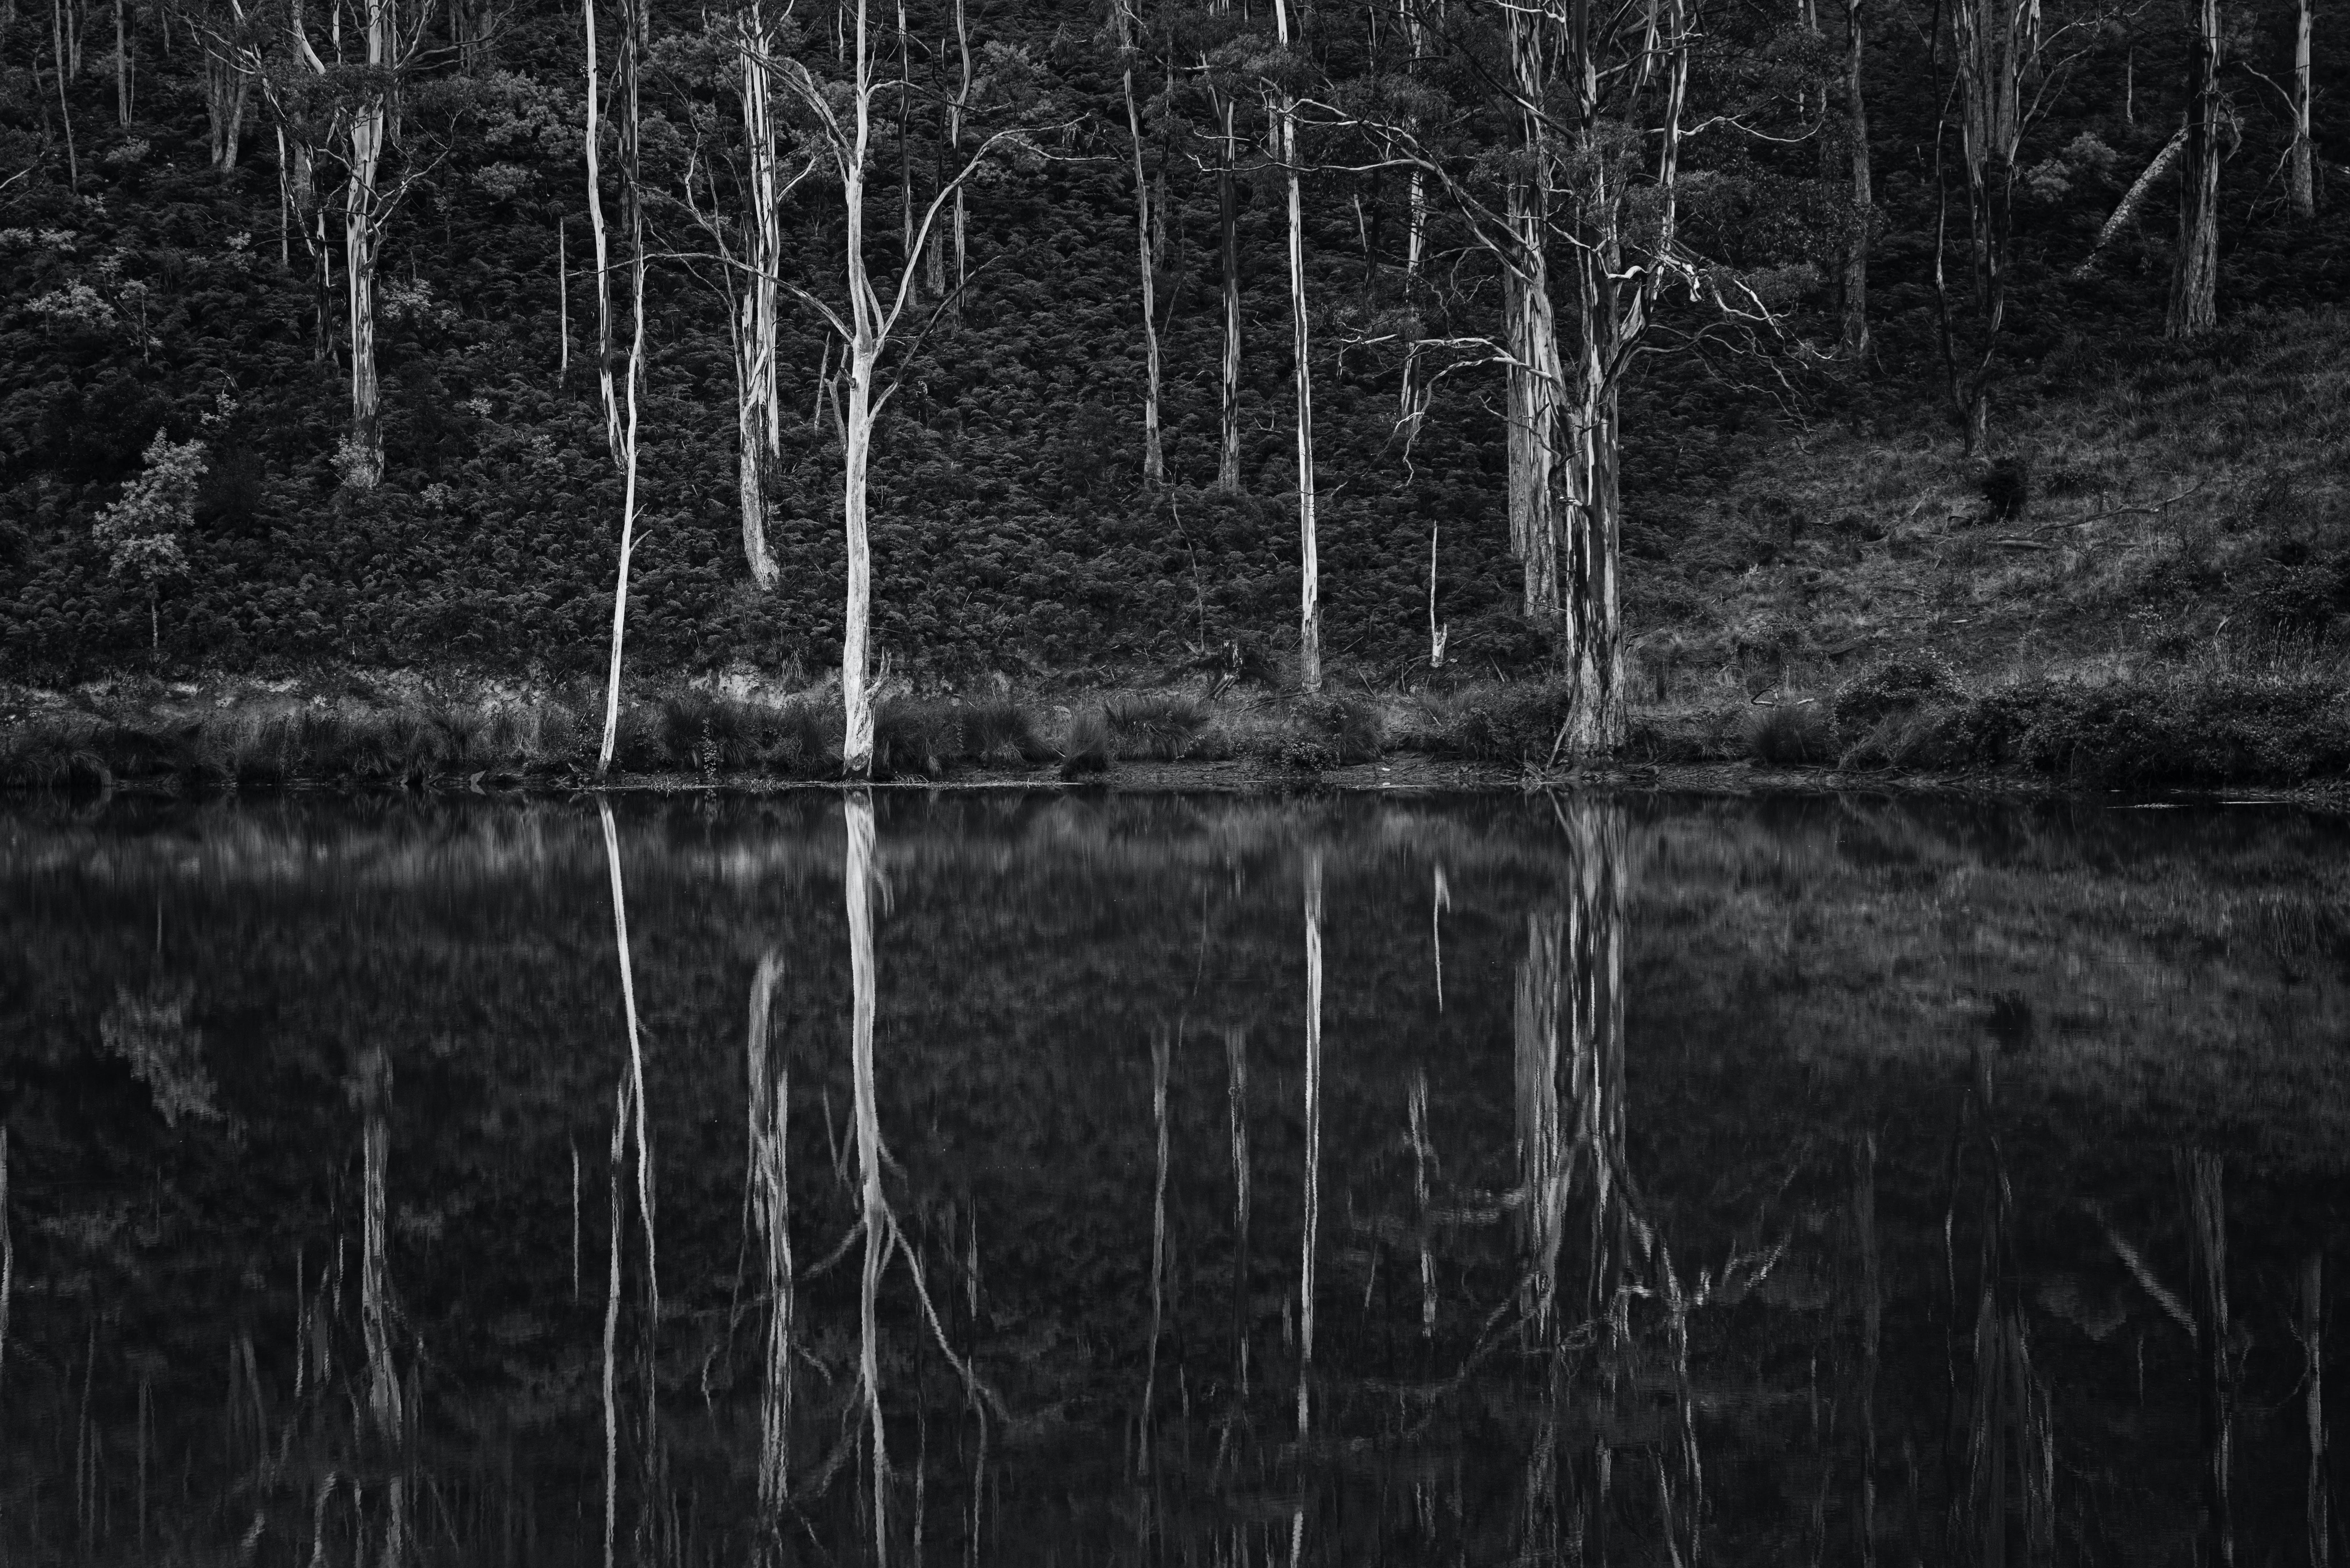 Grayscale Photo of Trees and Body of Water